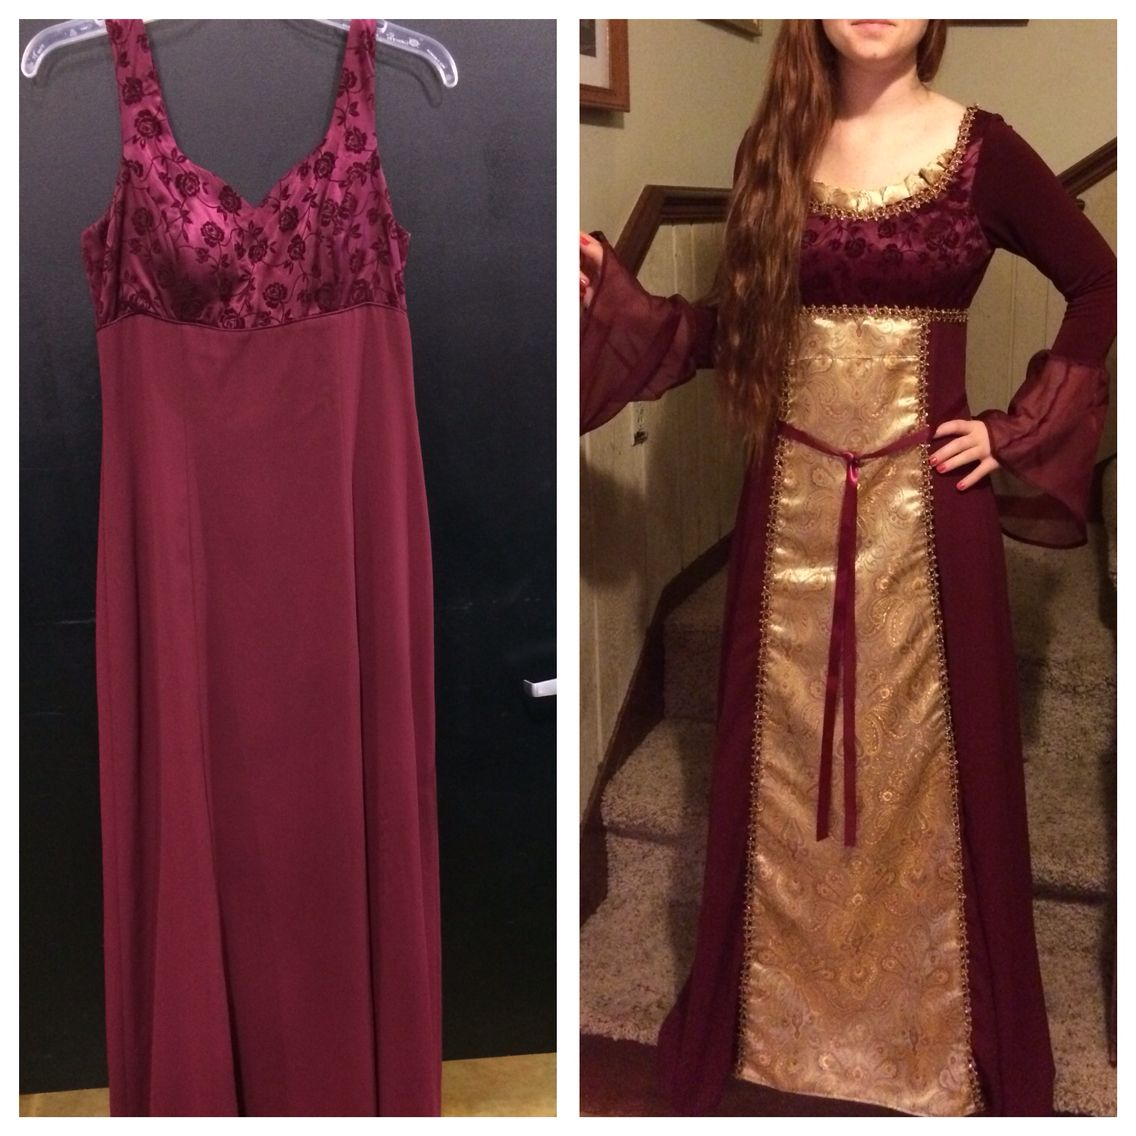 Up cycled renaissance costume i sewed together from thrift store up cycled renaissance costume i sewed together from thrift store items its what i do and i love it solutioingenieria Image collections